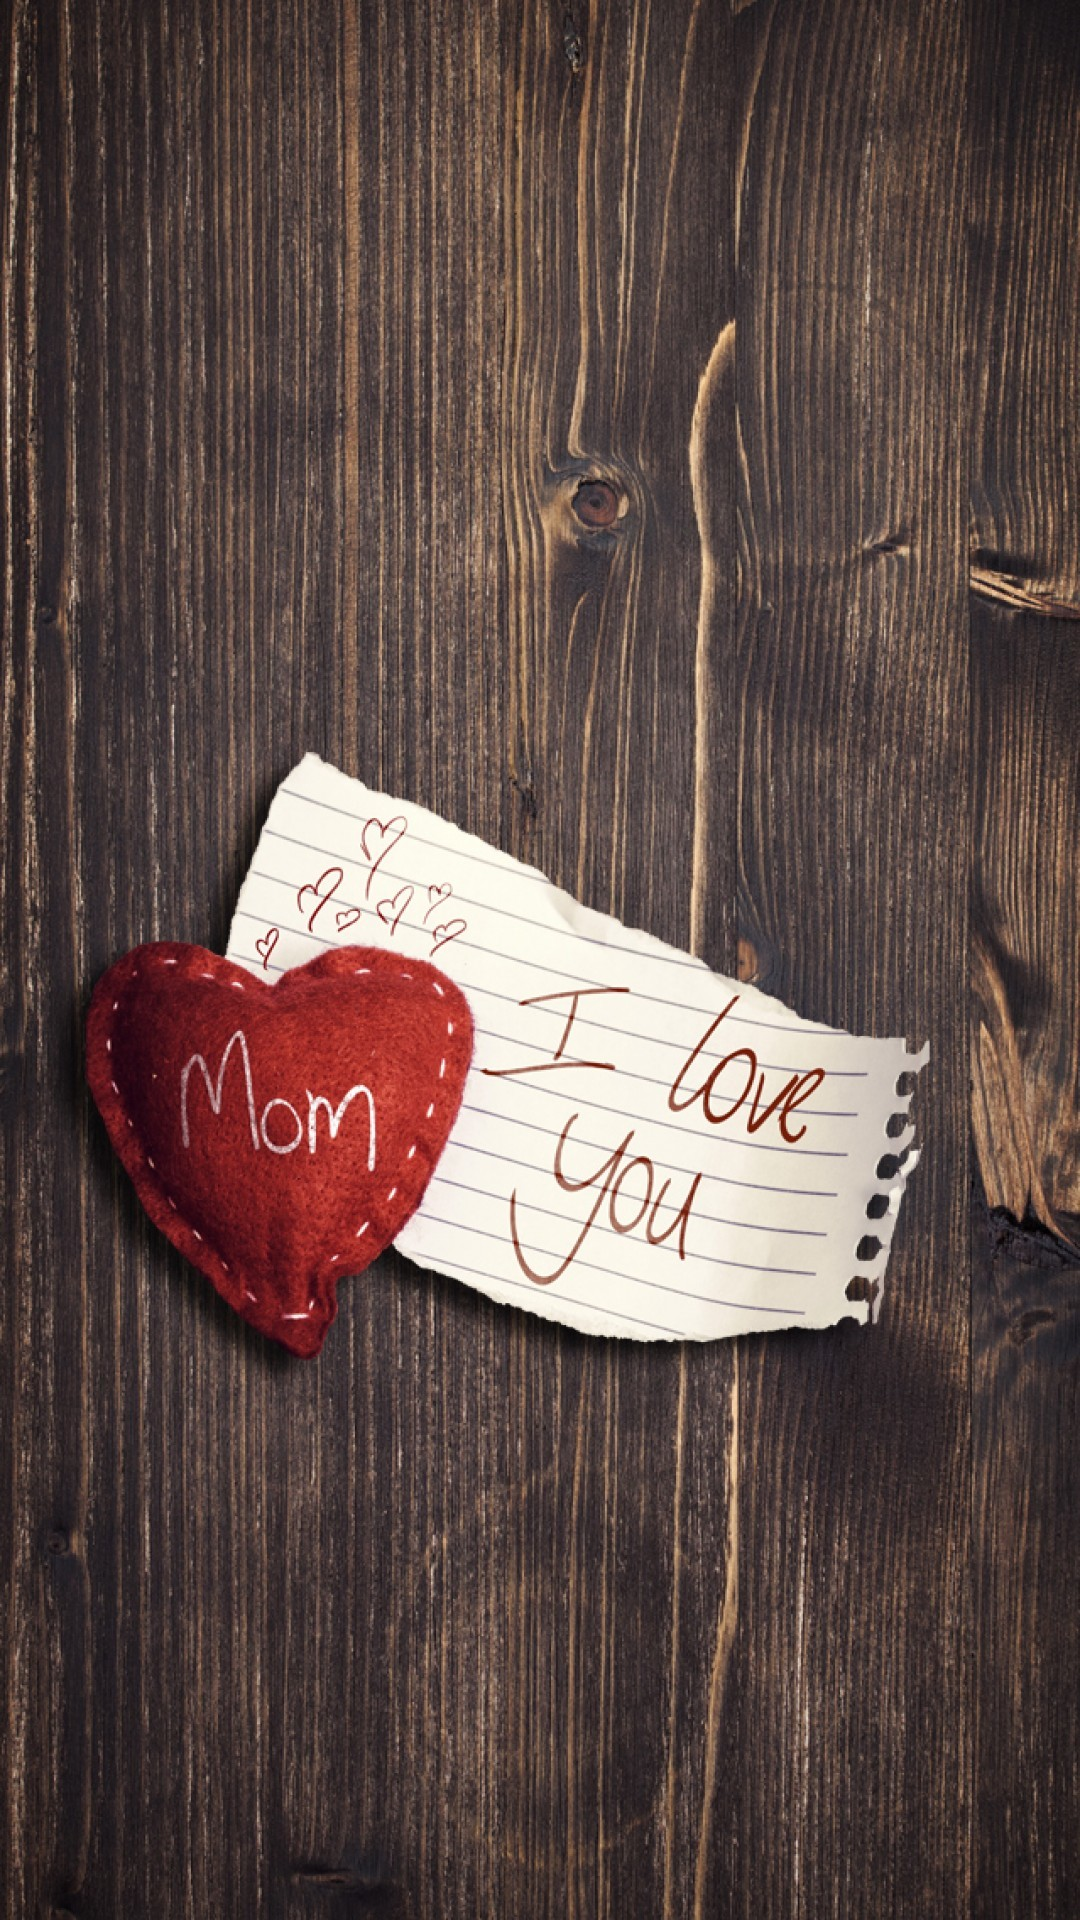 1080x1920 ... i love you mom wood background android wallpaper free download ...